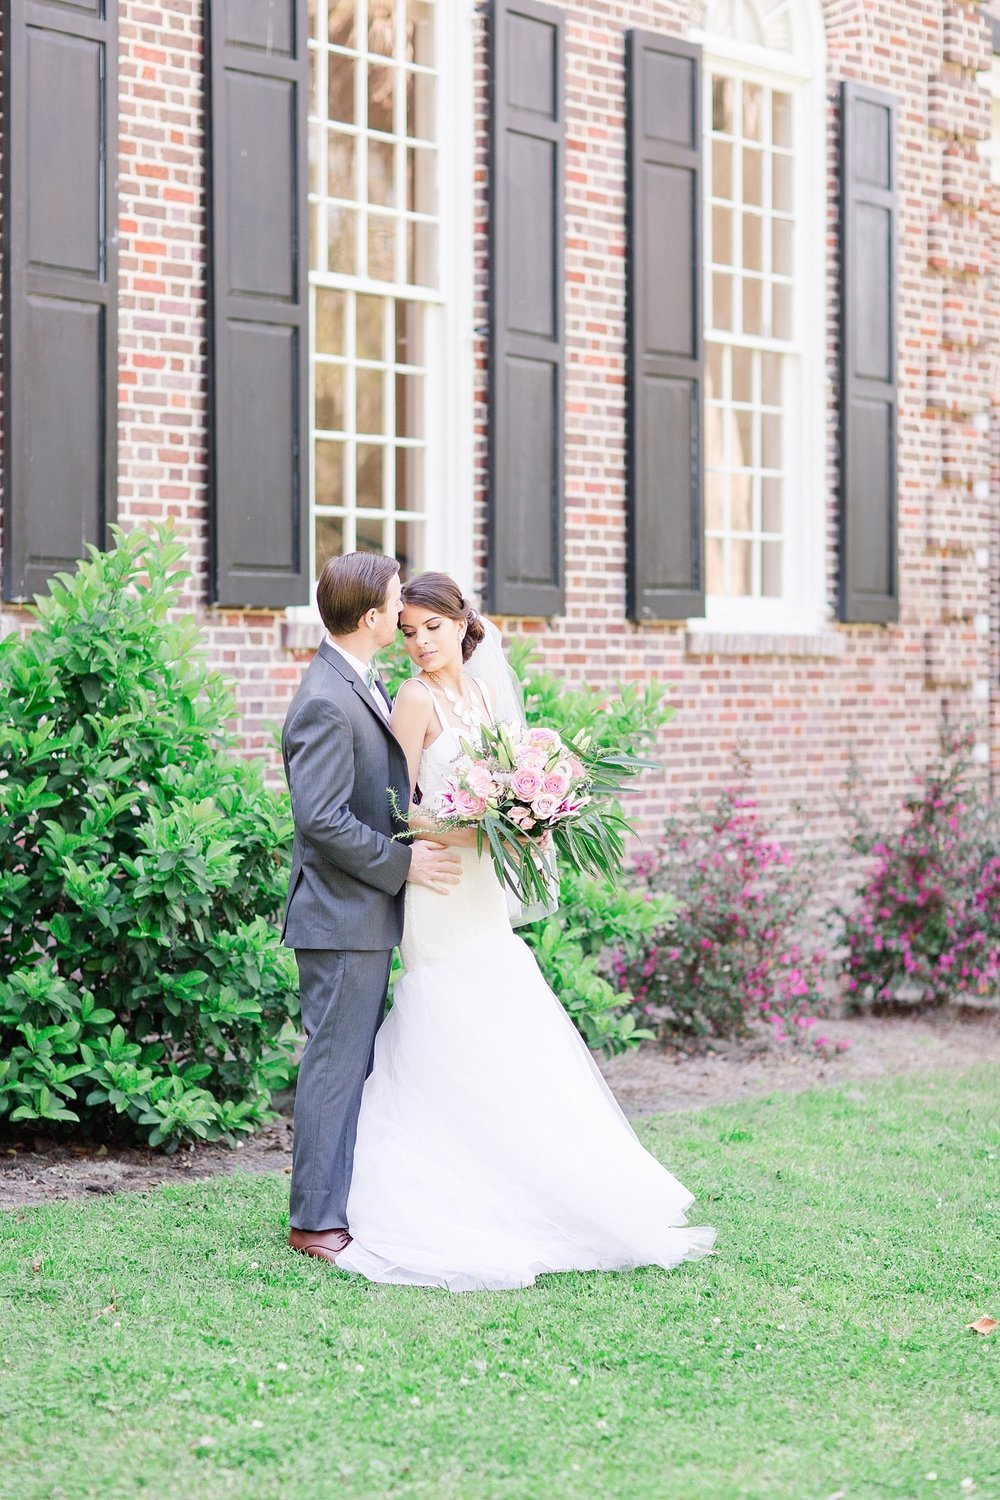 rachel-strickland-photography-katie-may-ivory-and-beau-bridal-boutique-bethesda-academy-wedding-whitfield-chapel-wedding-savannah-bridal-boutique-savannah-weddings-savannah-wedding-savannah-wedding-planner-savannah-bridal-gowns-savannah-bride-4.jpg